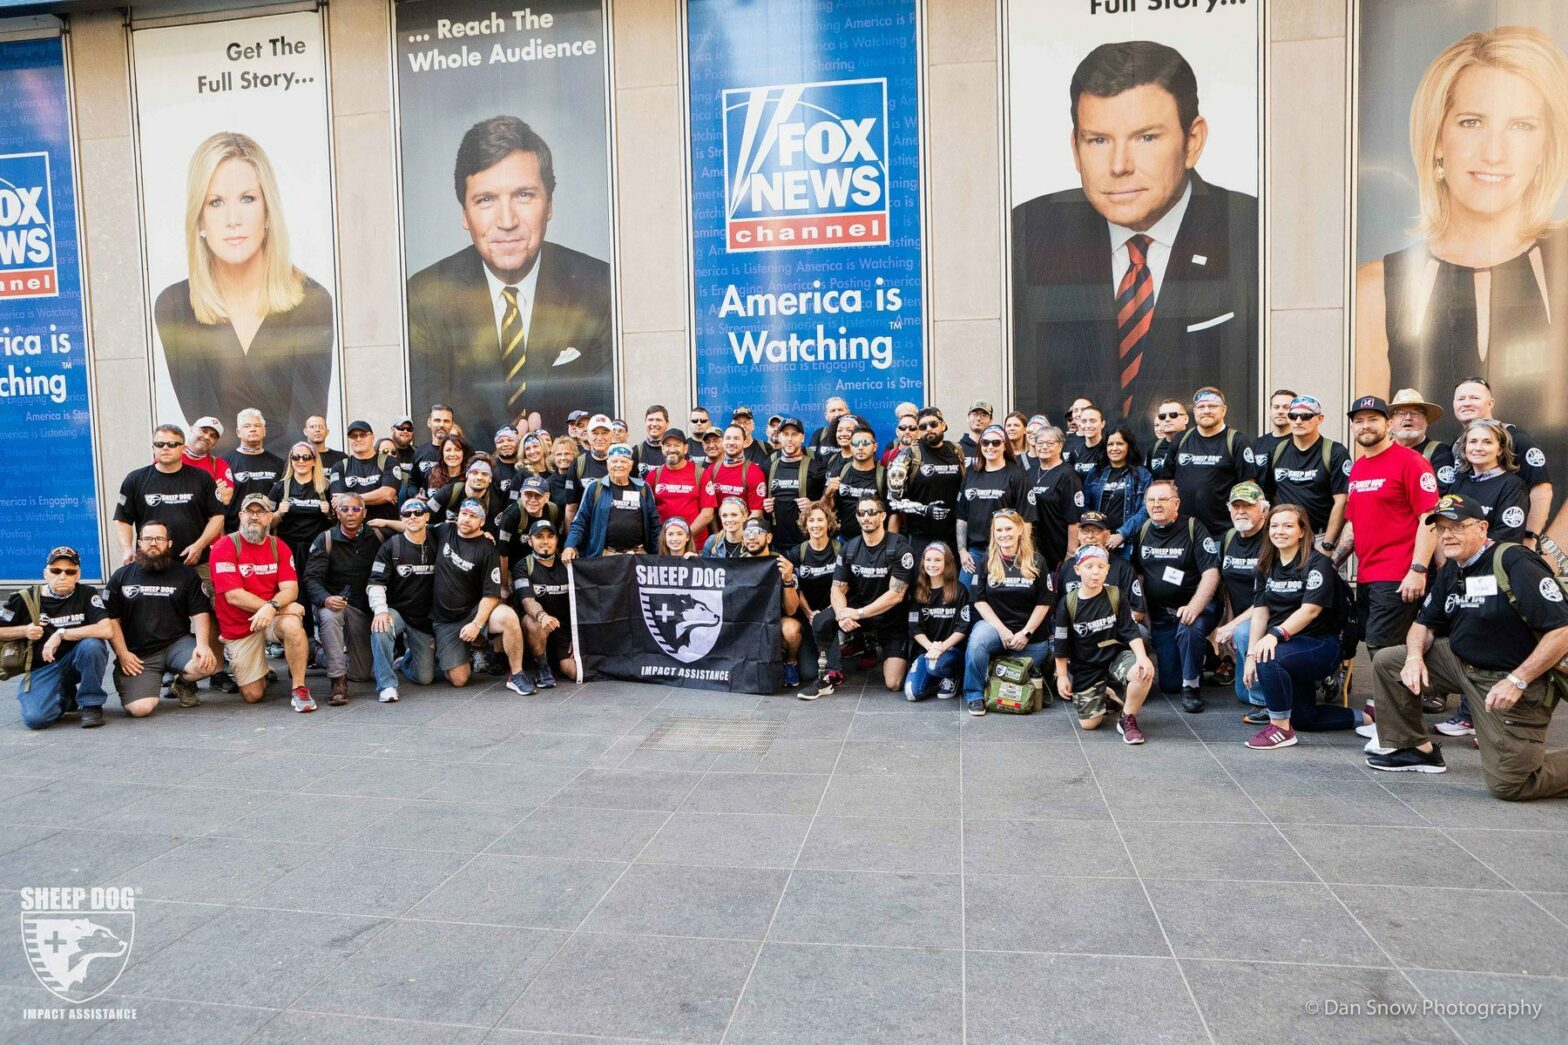 SDIA's Trip to NYC Brings Healing, Camaraderie to 80+ Veterans, First Responders